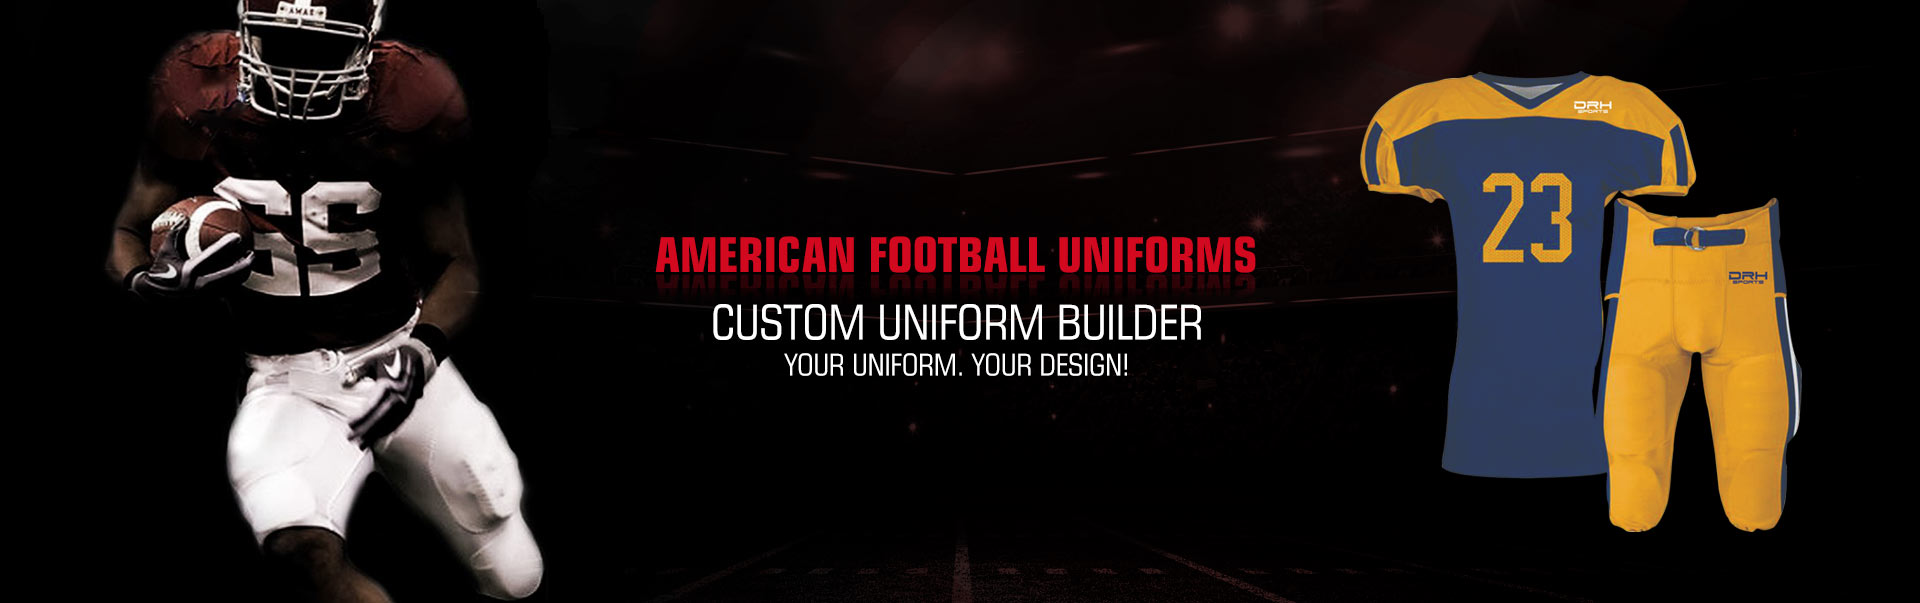 American Football Uniform Wholesaler, Suppliers in Naberezhnye Chelny